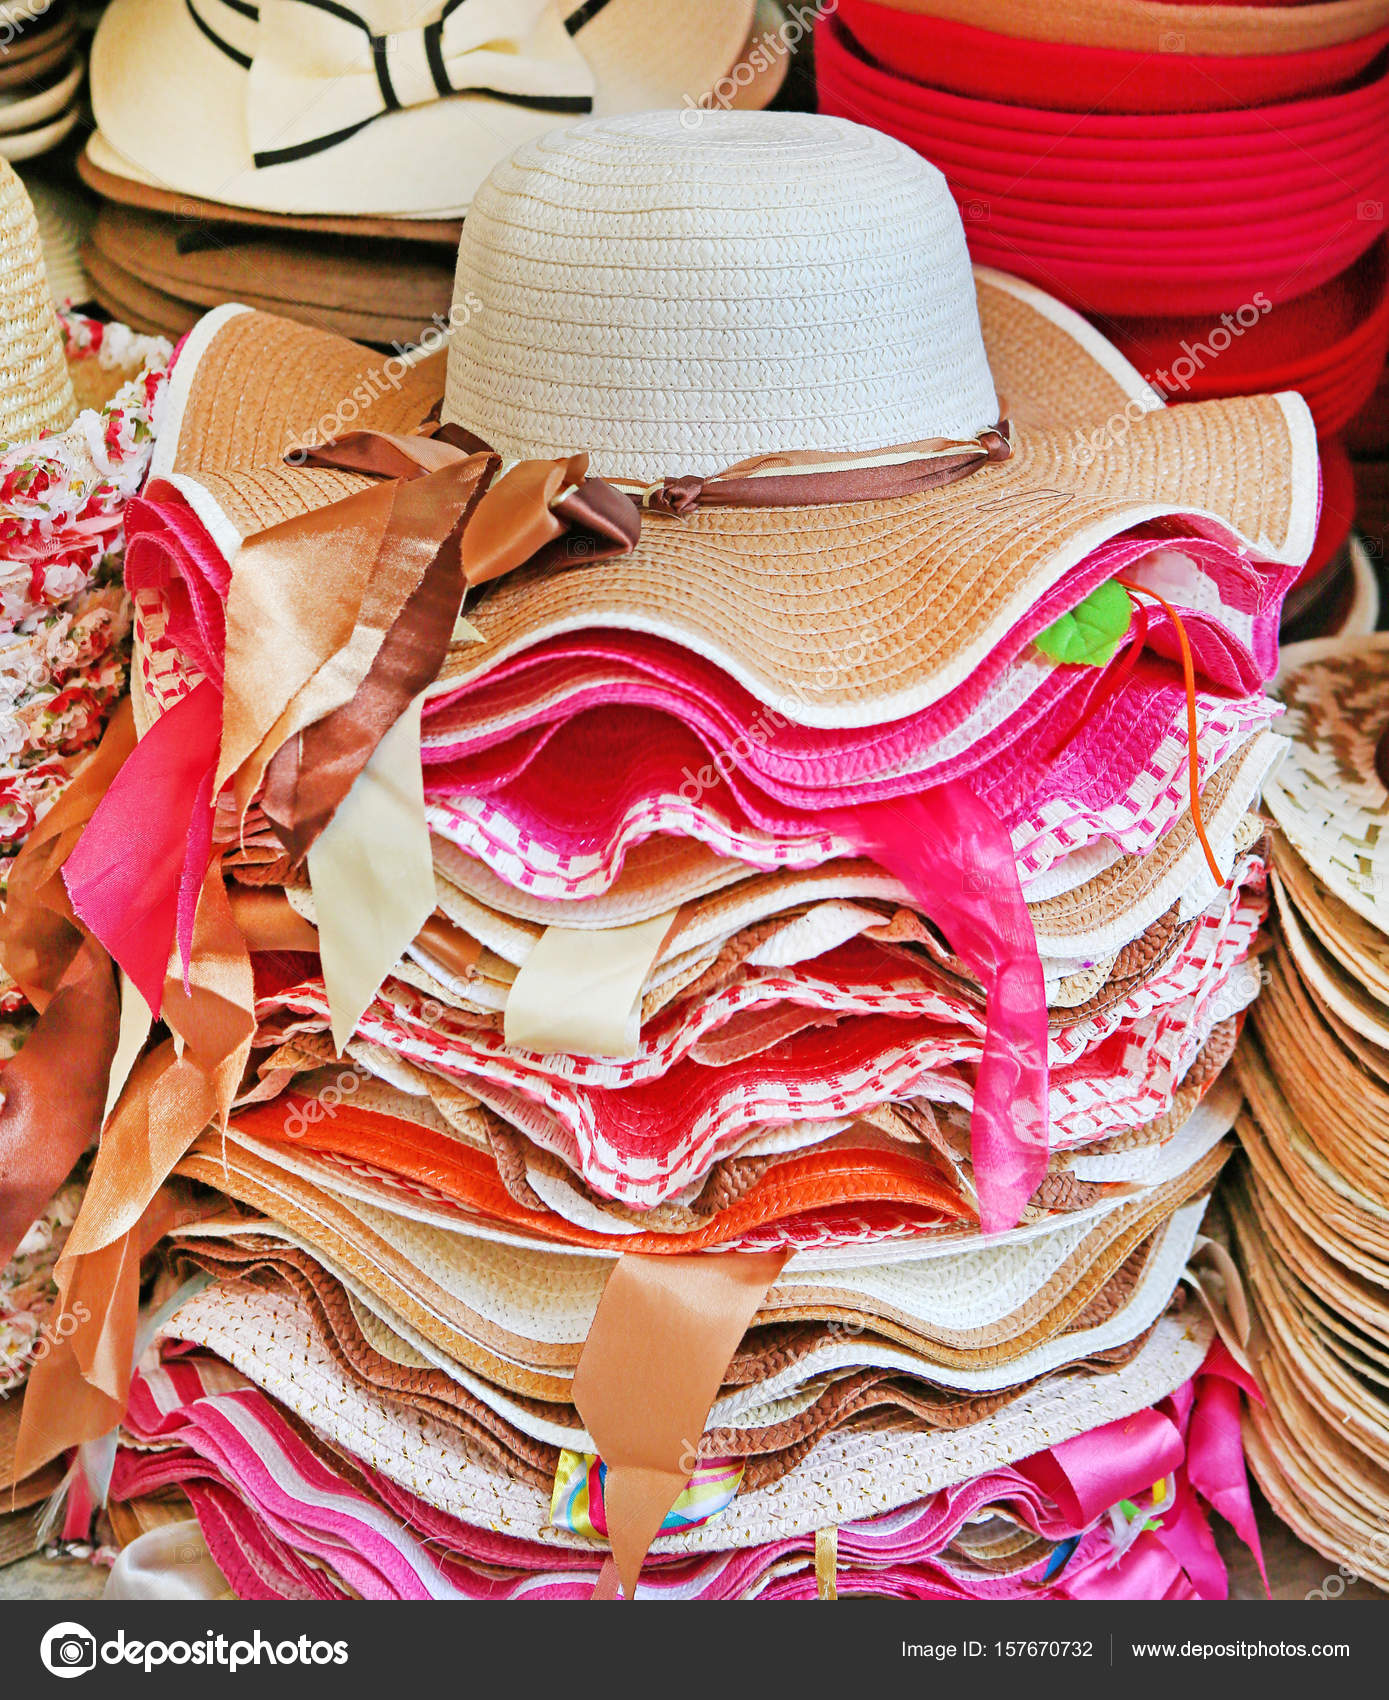 51ba5ccb199c9 Summer hats for sale in a market stall outdoor — Stock Photo ...